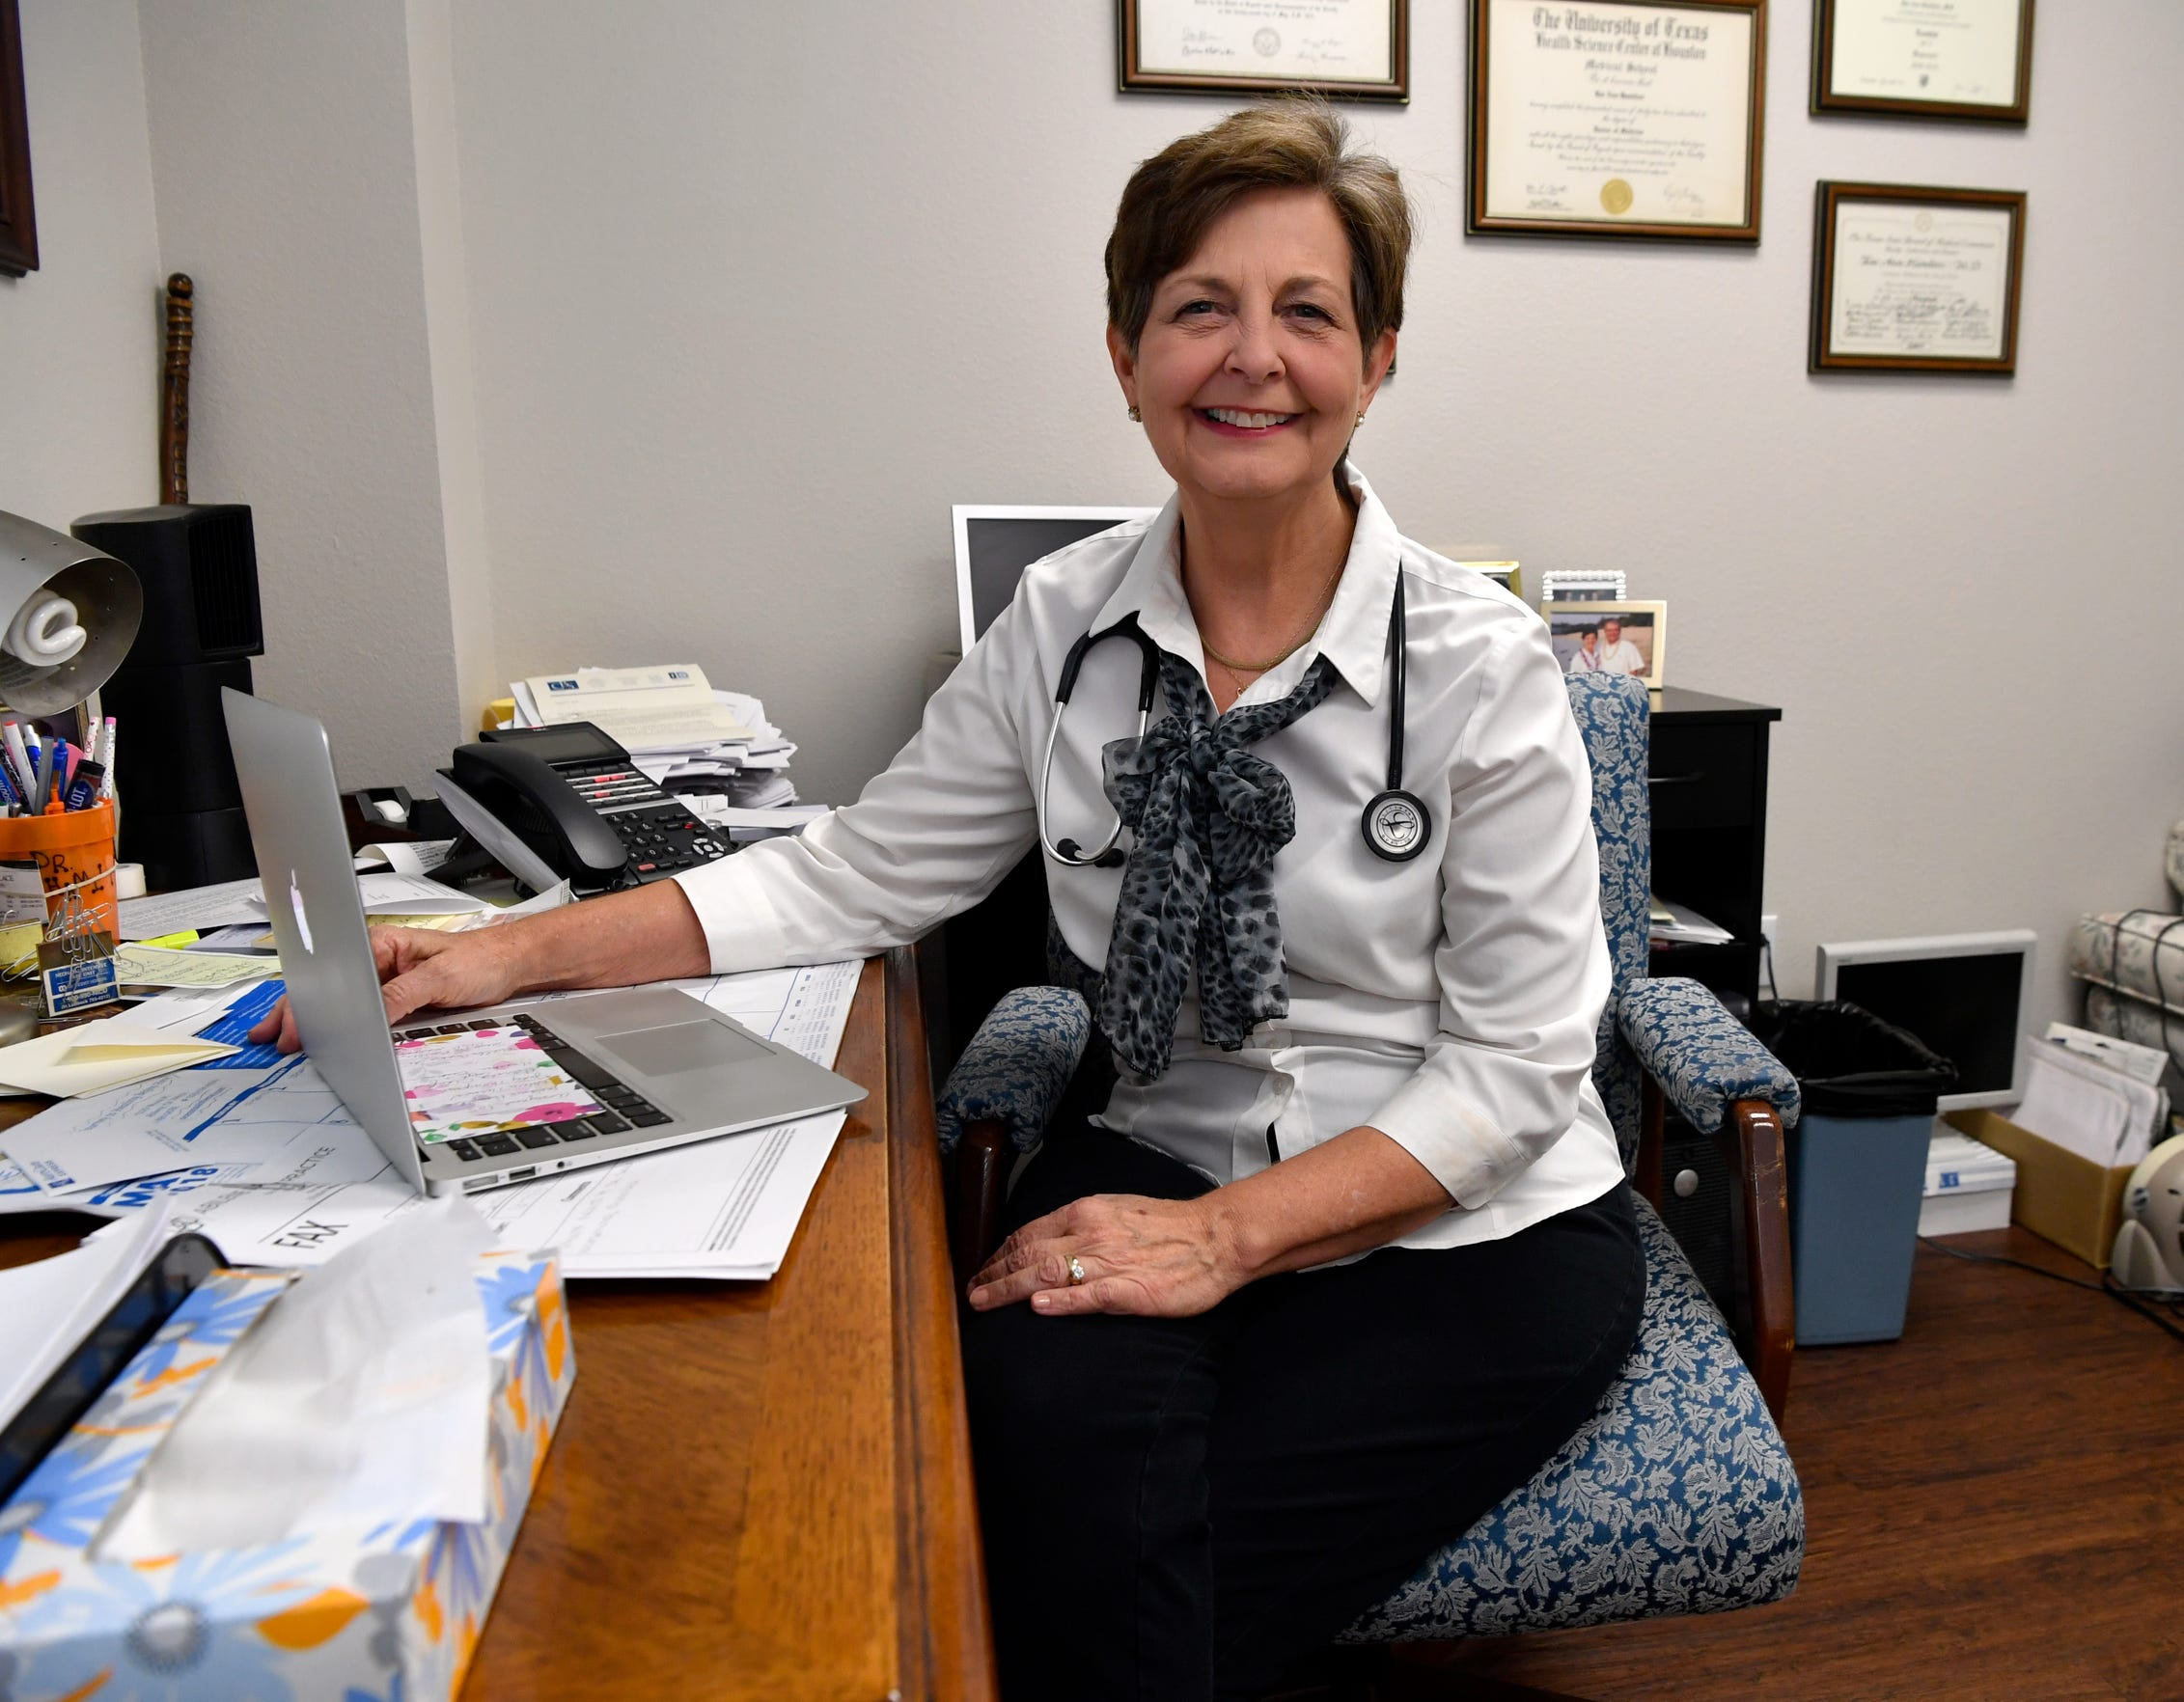 Dr. Rae Ann Hamilton in her office.